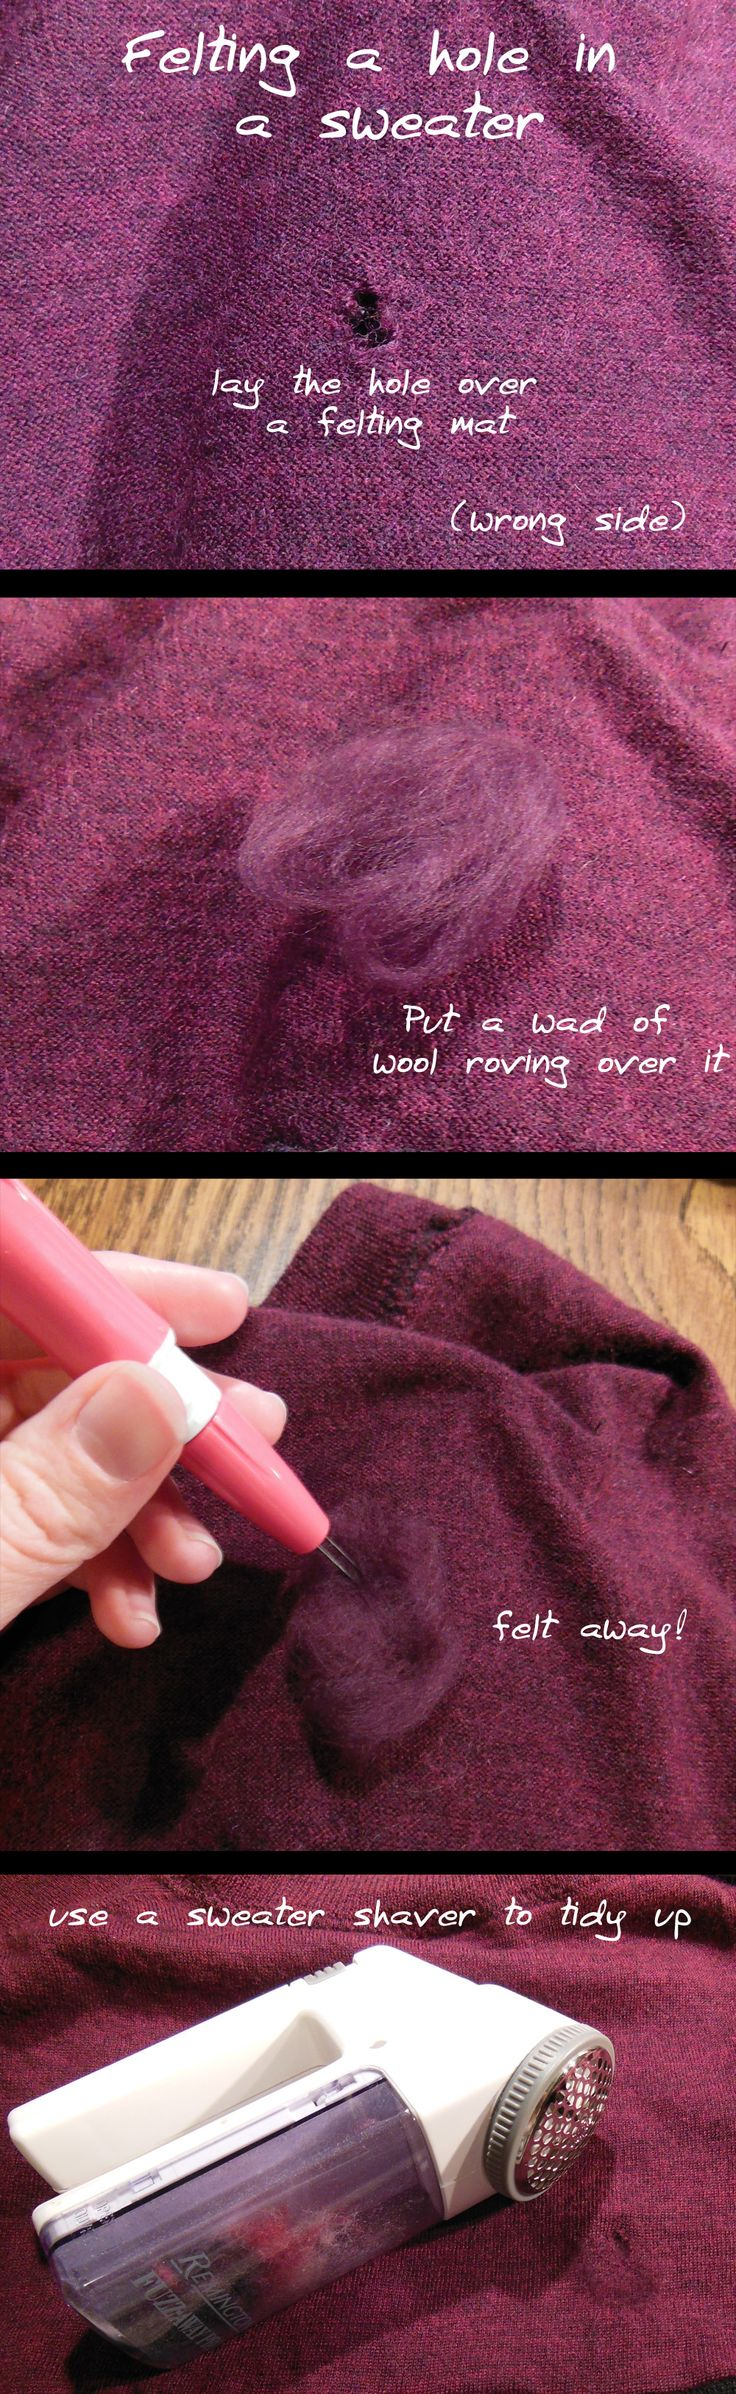 felting to mend a hole in a sweater